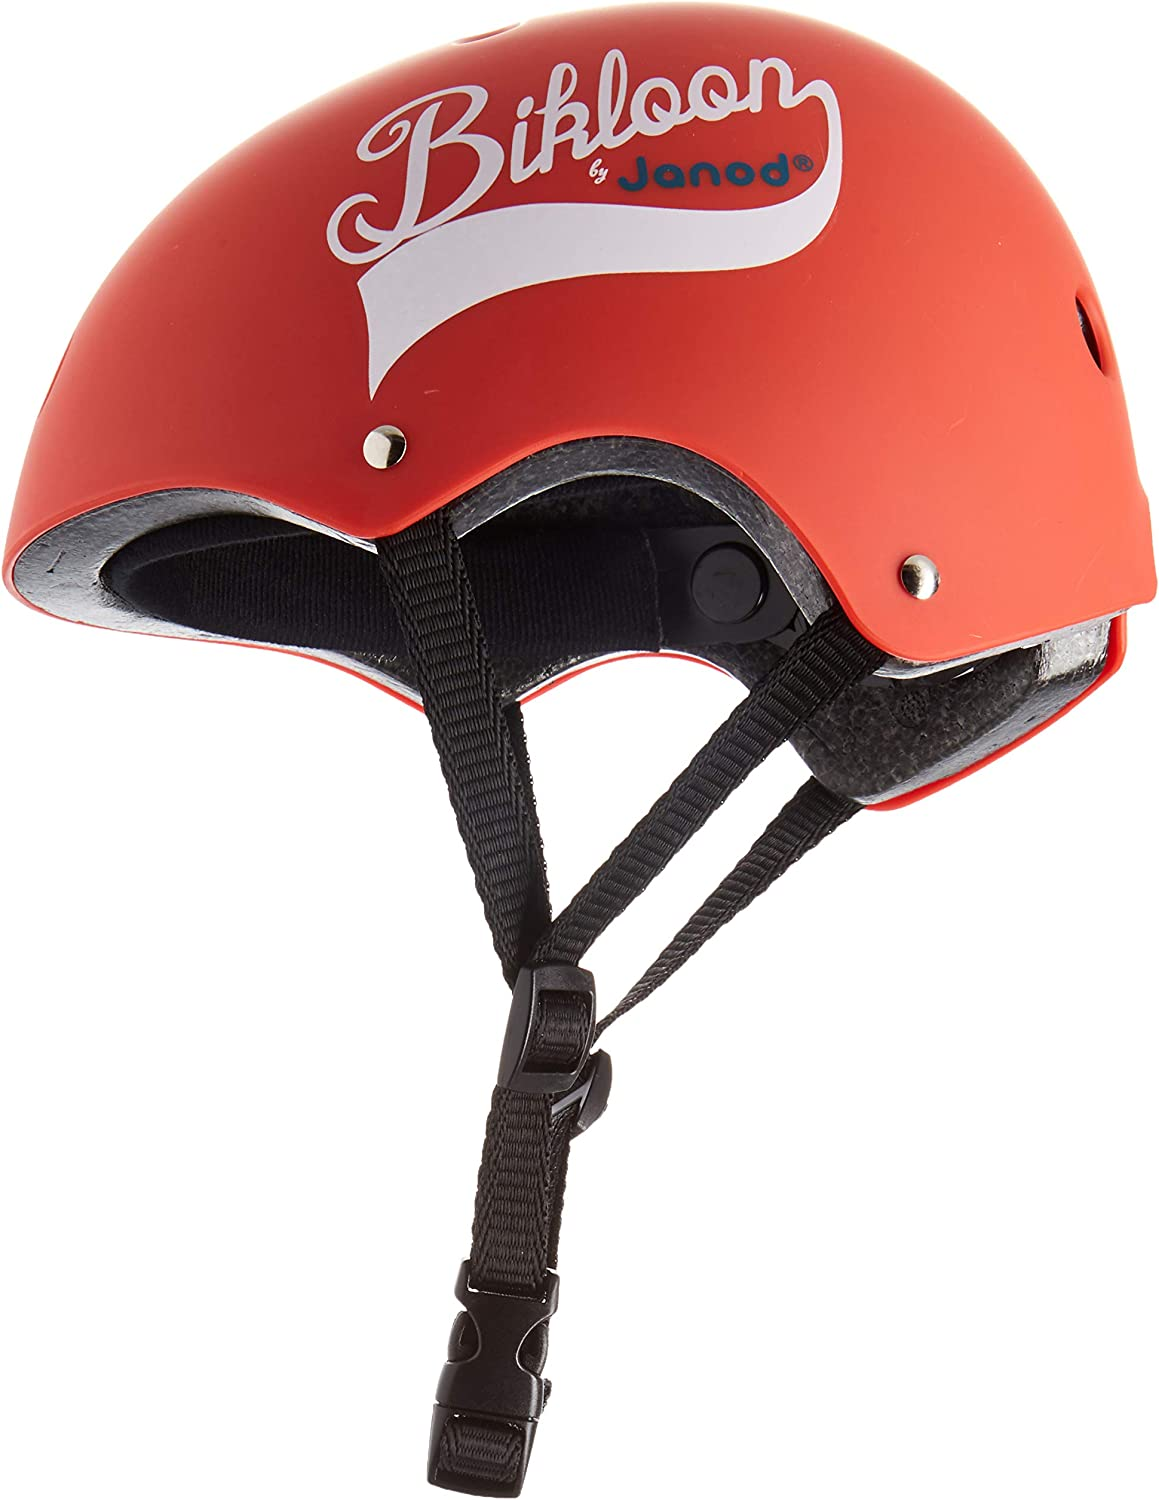 PC Ages 3-6 Years + Ventilation and Adjustment Bikloon Bicycle Accessories EPS Toddler Polycarbonate Polyurethane Youth Adjustable Head Size PE Child Janod Red Balance Bike Helmet